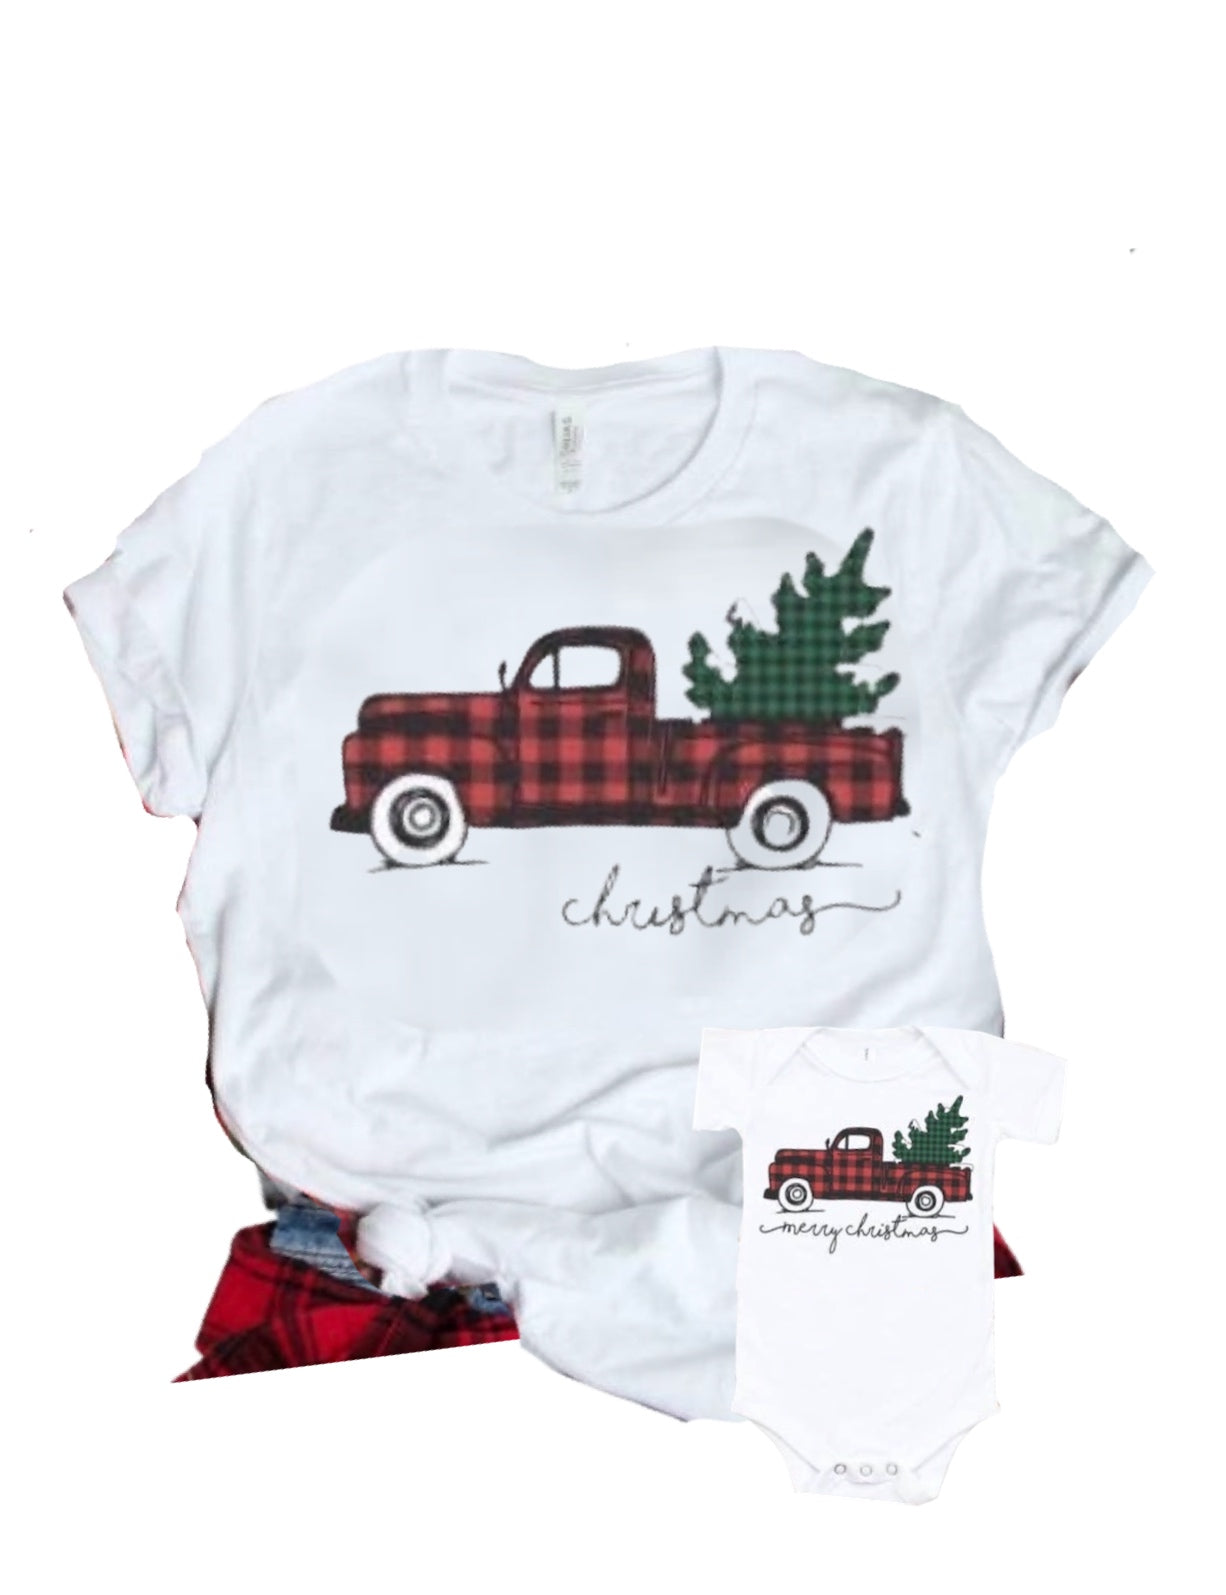 Buffalo Plaid Christmas Truck Bodysuit or Shirt